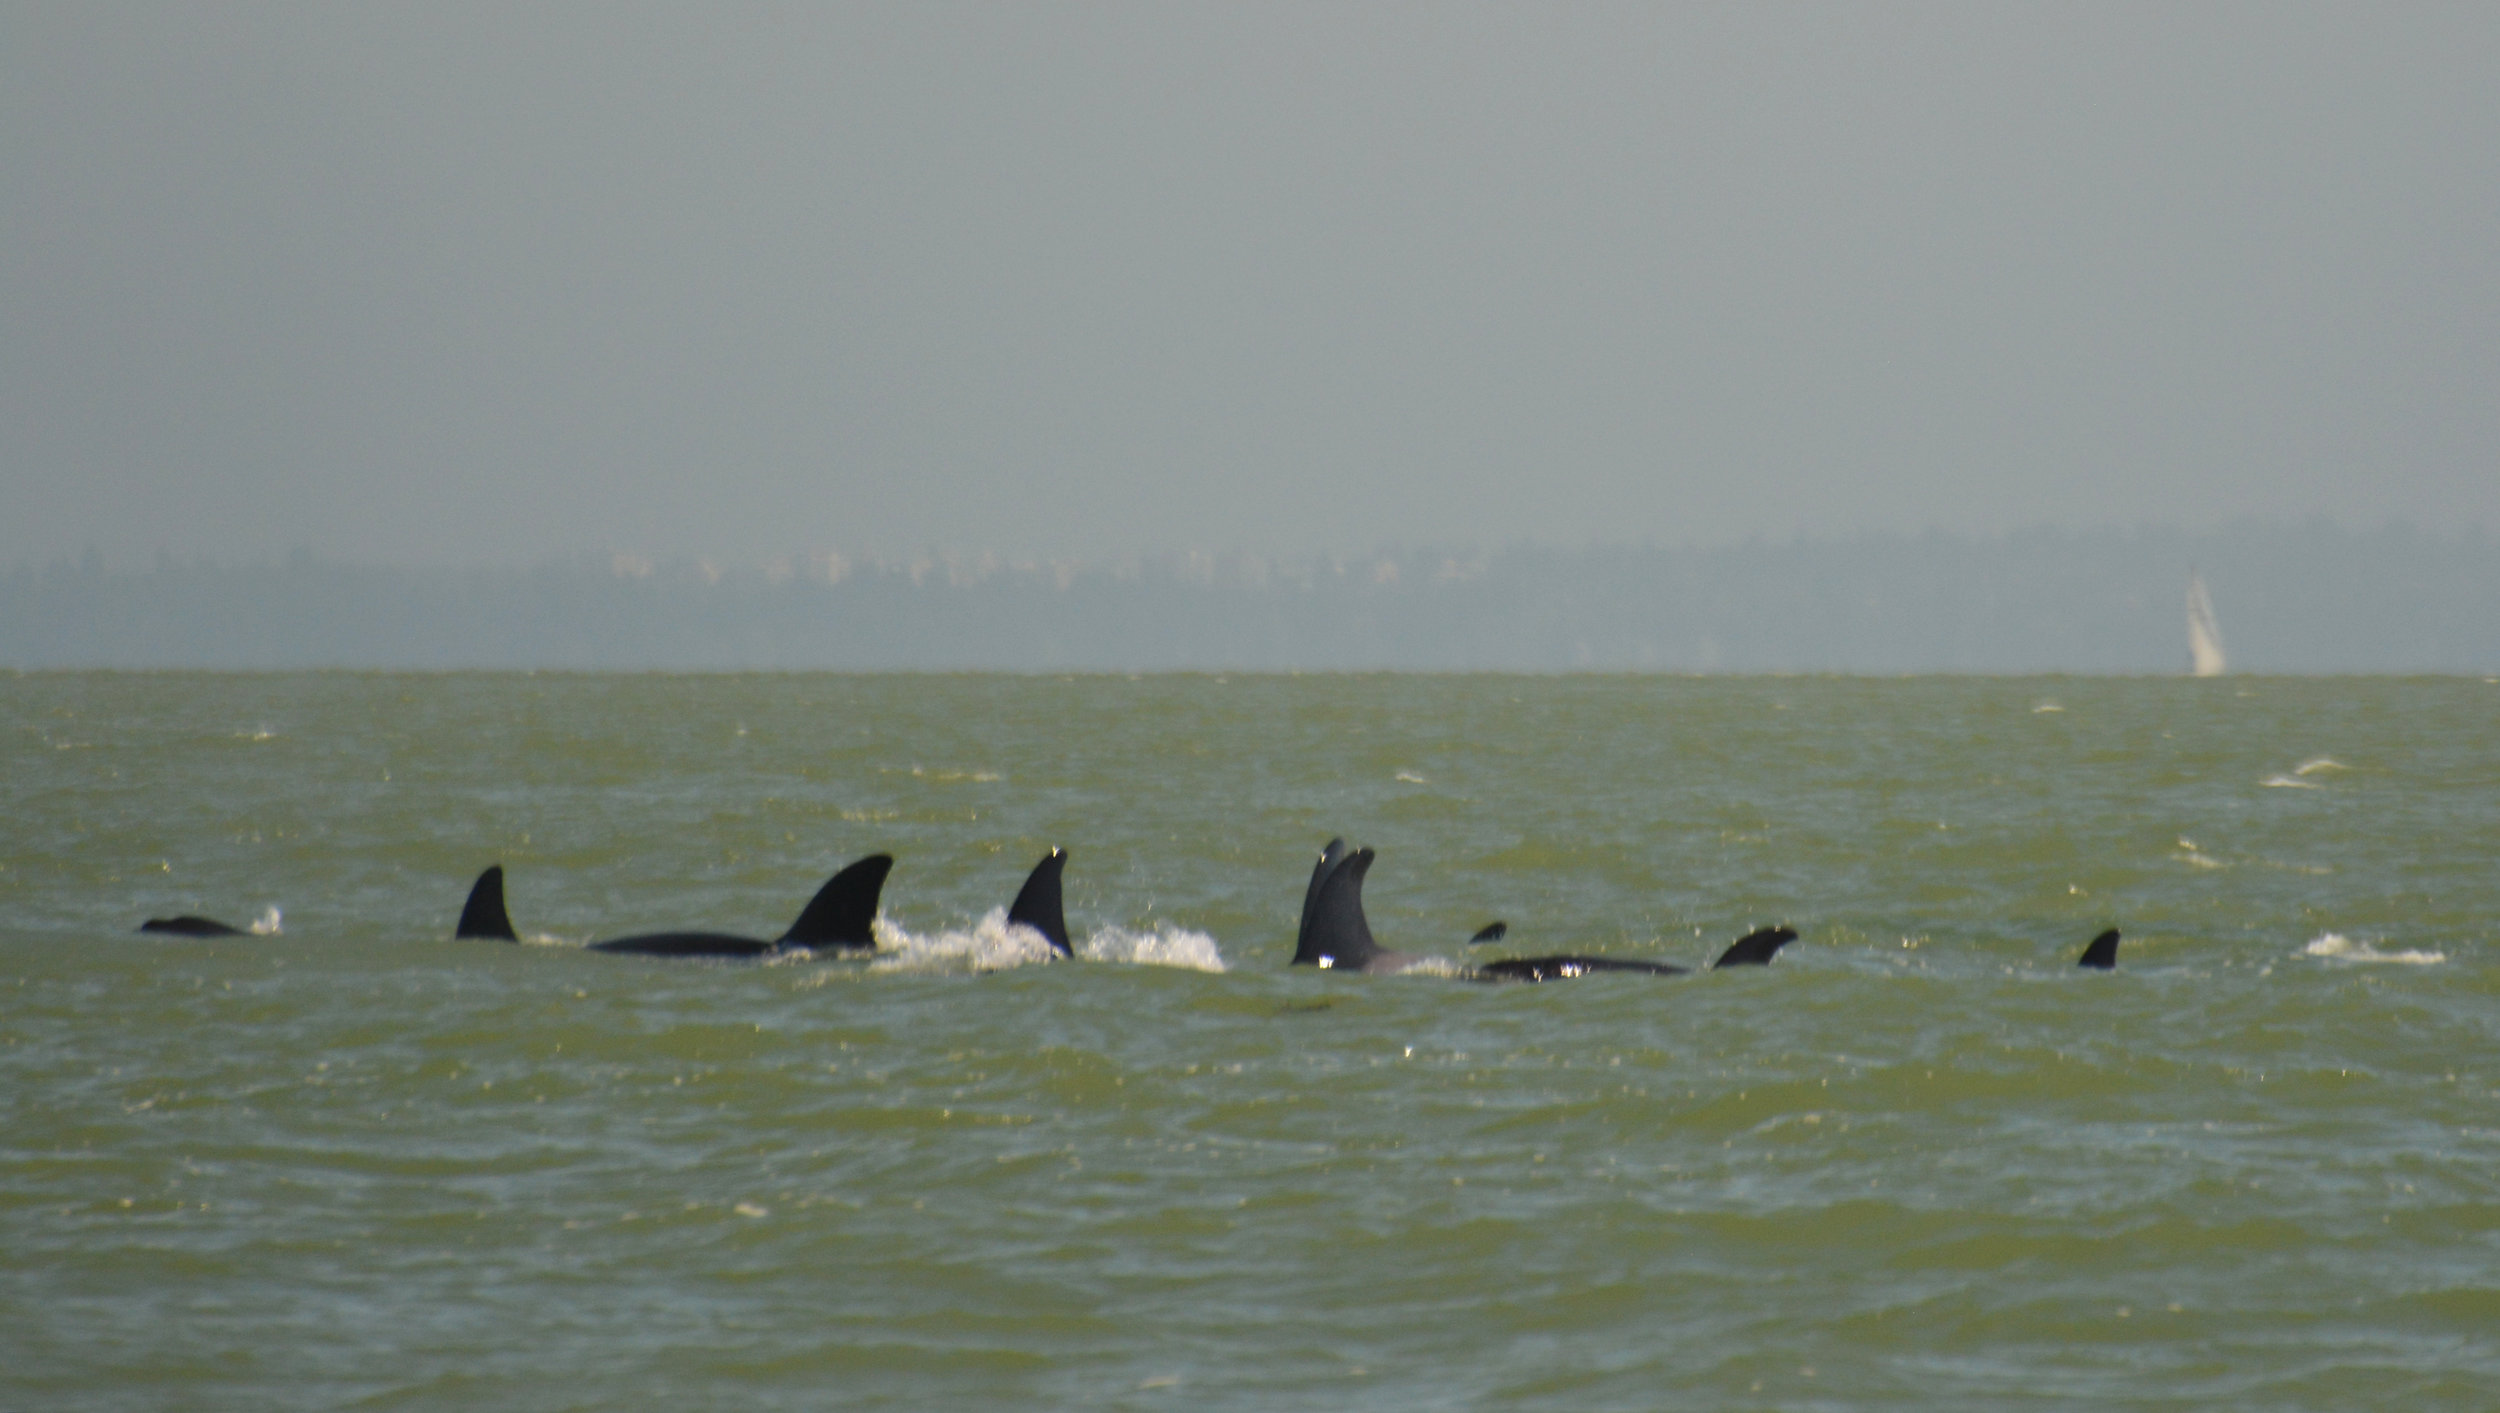 How many whales can you count? We think 9! Photo by Rebeka Pirker.